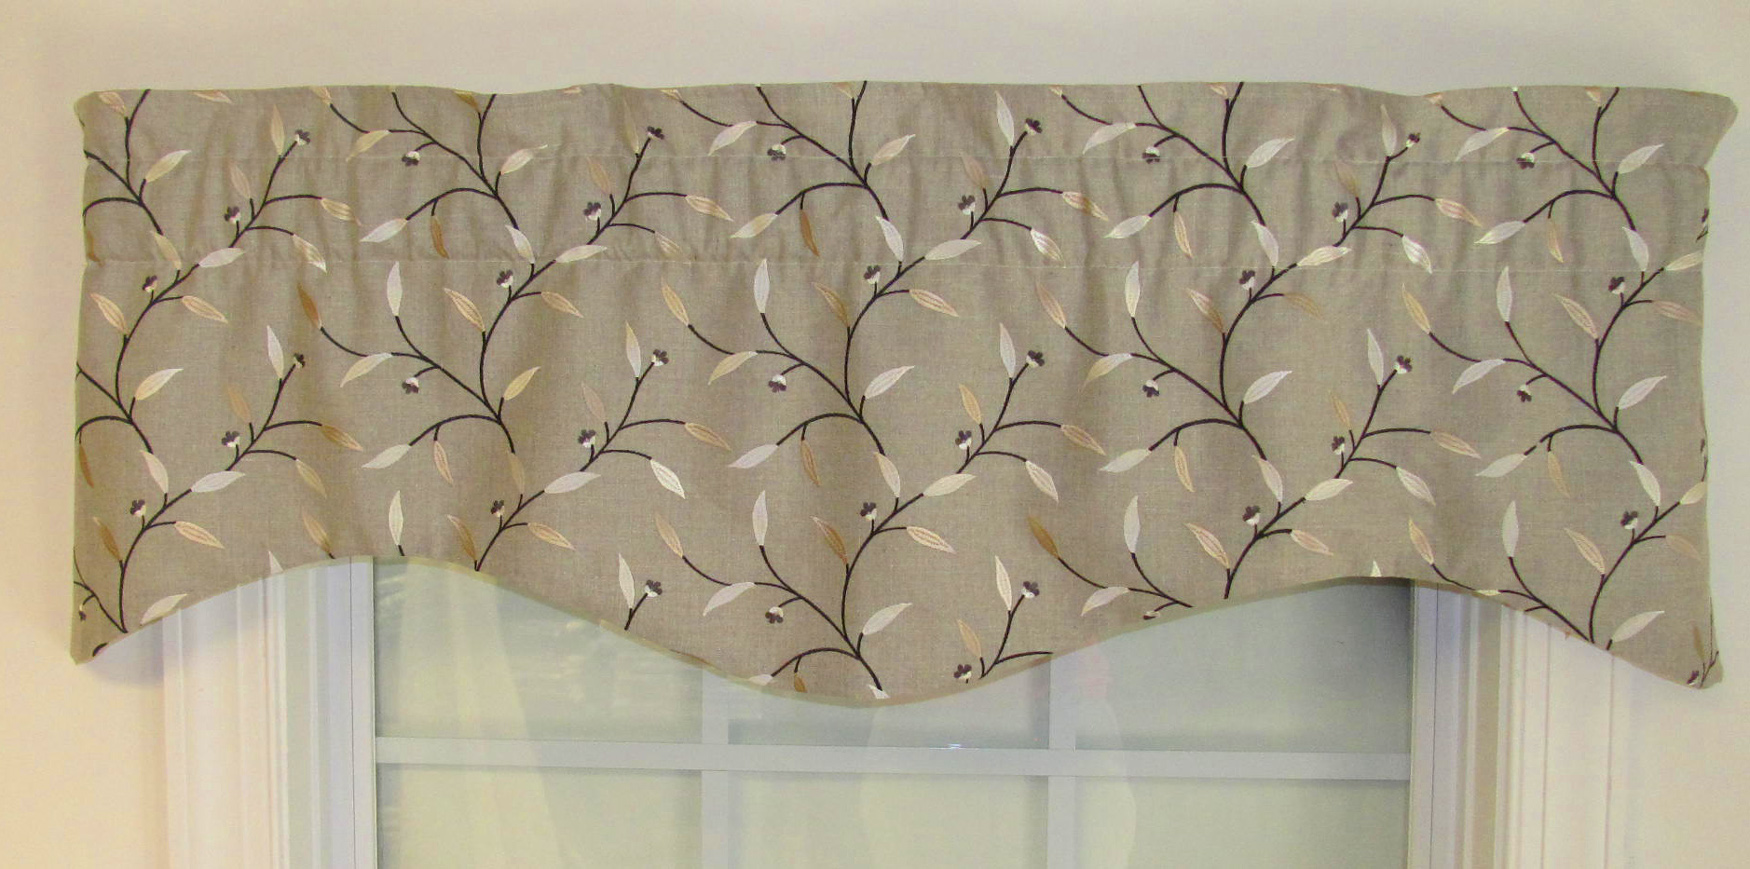 interior beige home decorating kitchen curtains window panels valance great mcgrecords wonderful drapes com waverly with and for muntins valances also addition rod your molding curtain design to